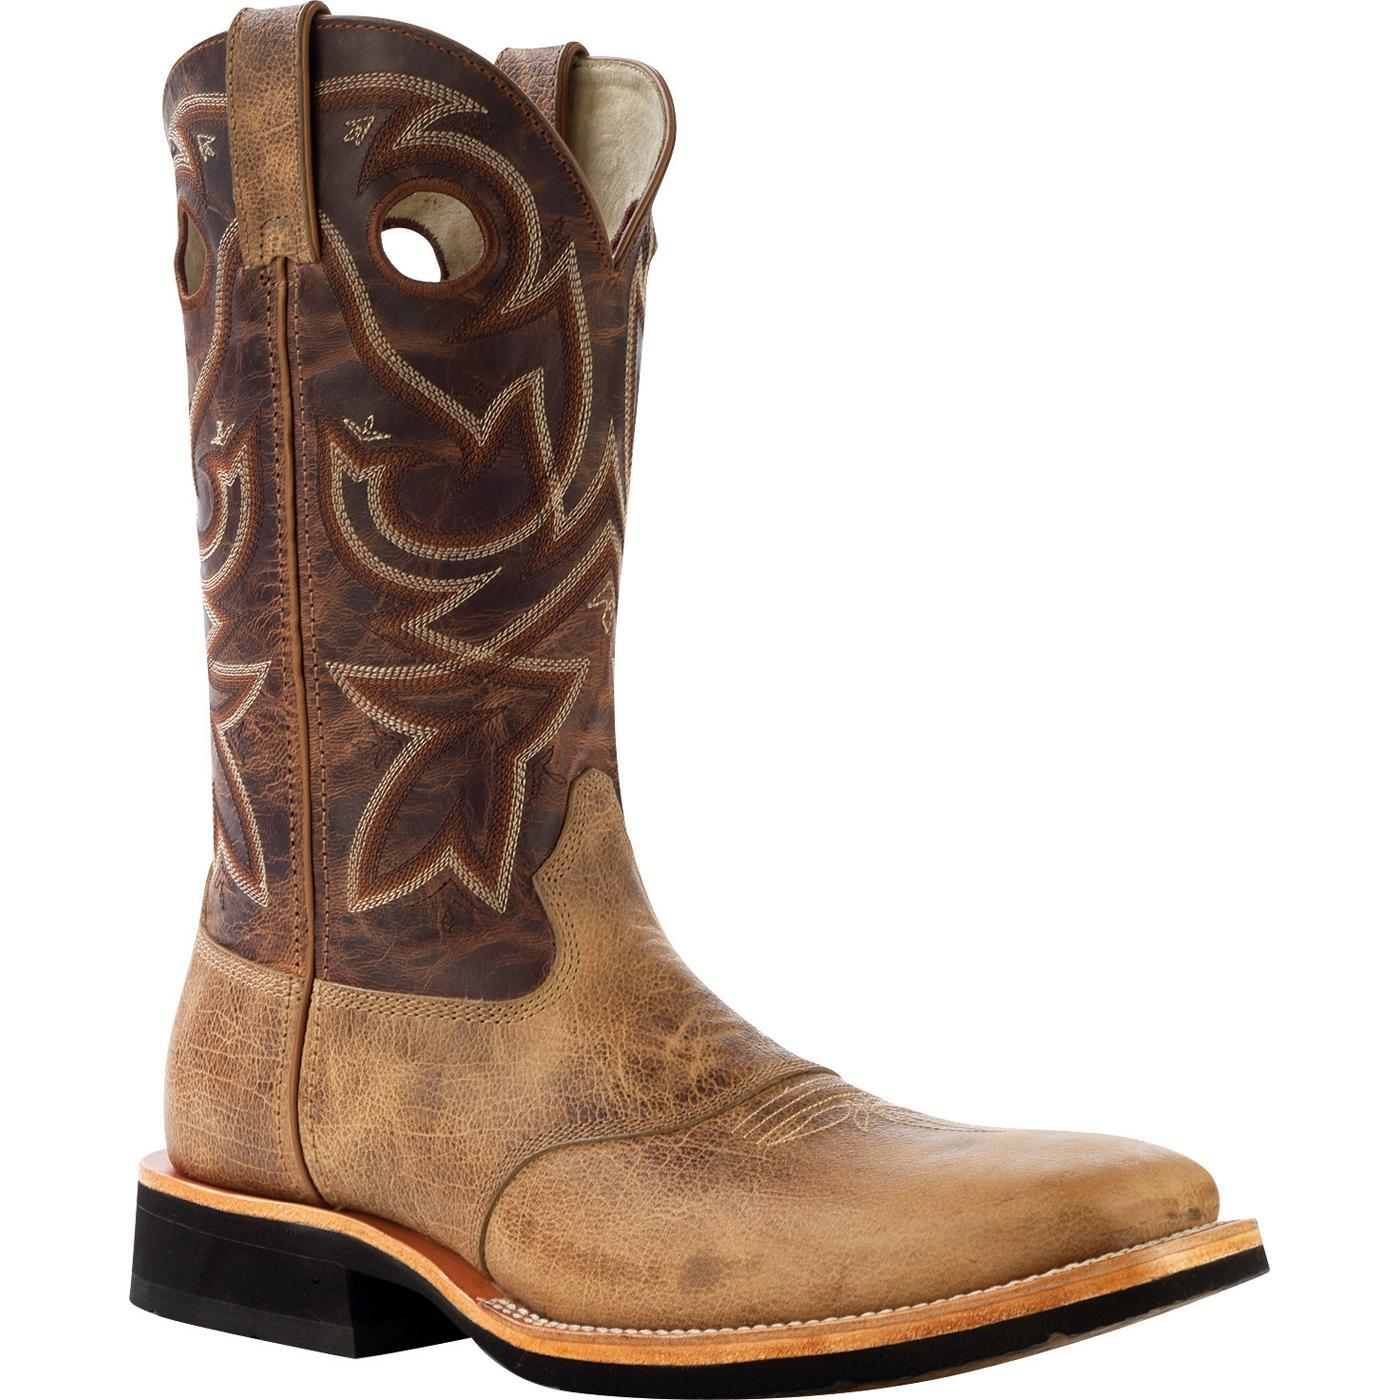 These Rocky Men's Dually Crepe EX4 Western Boots Are